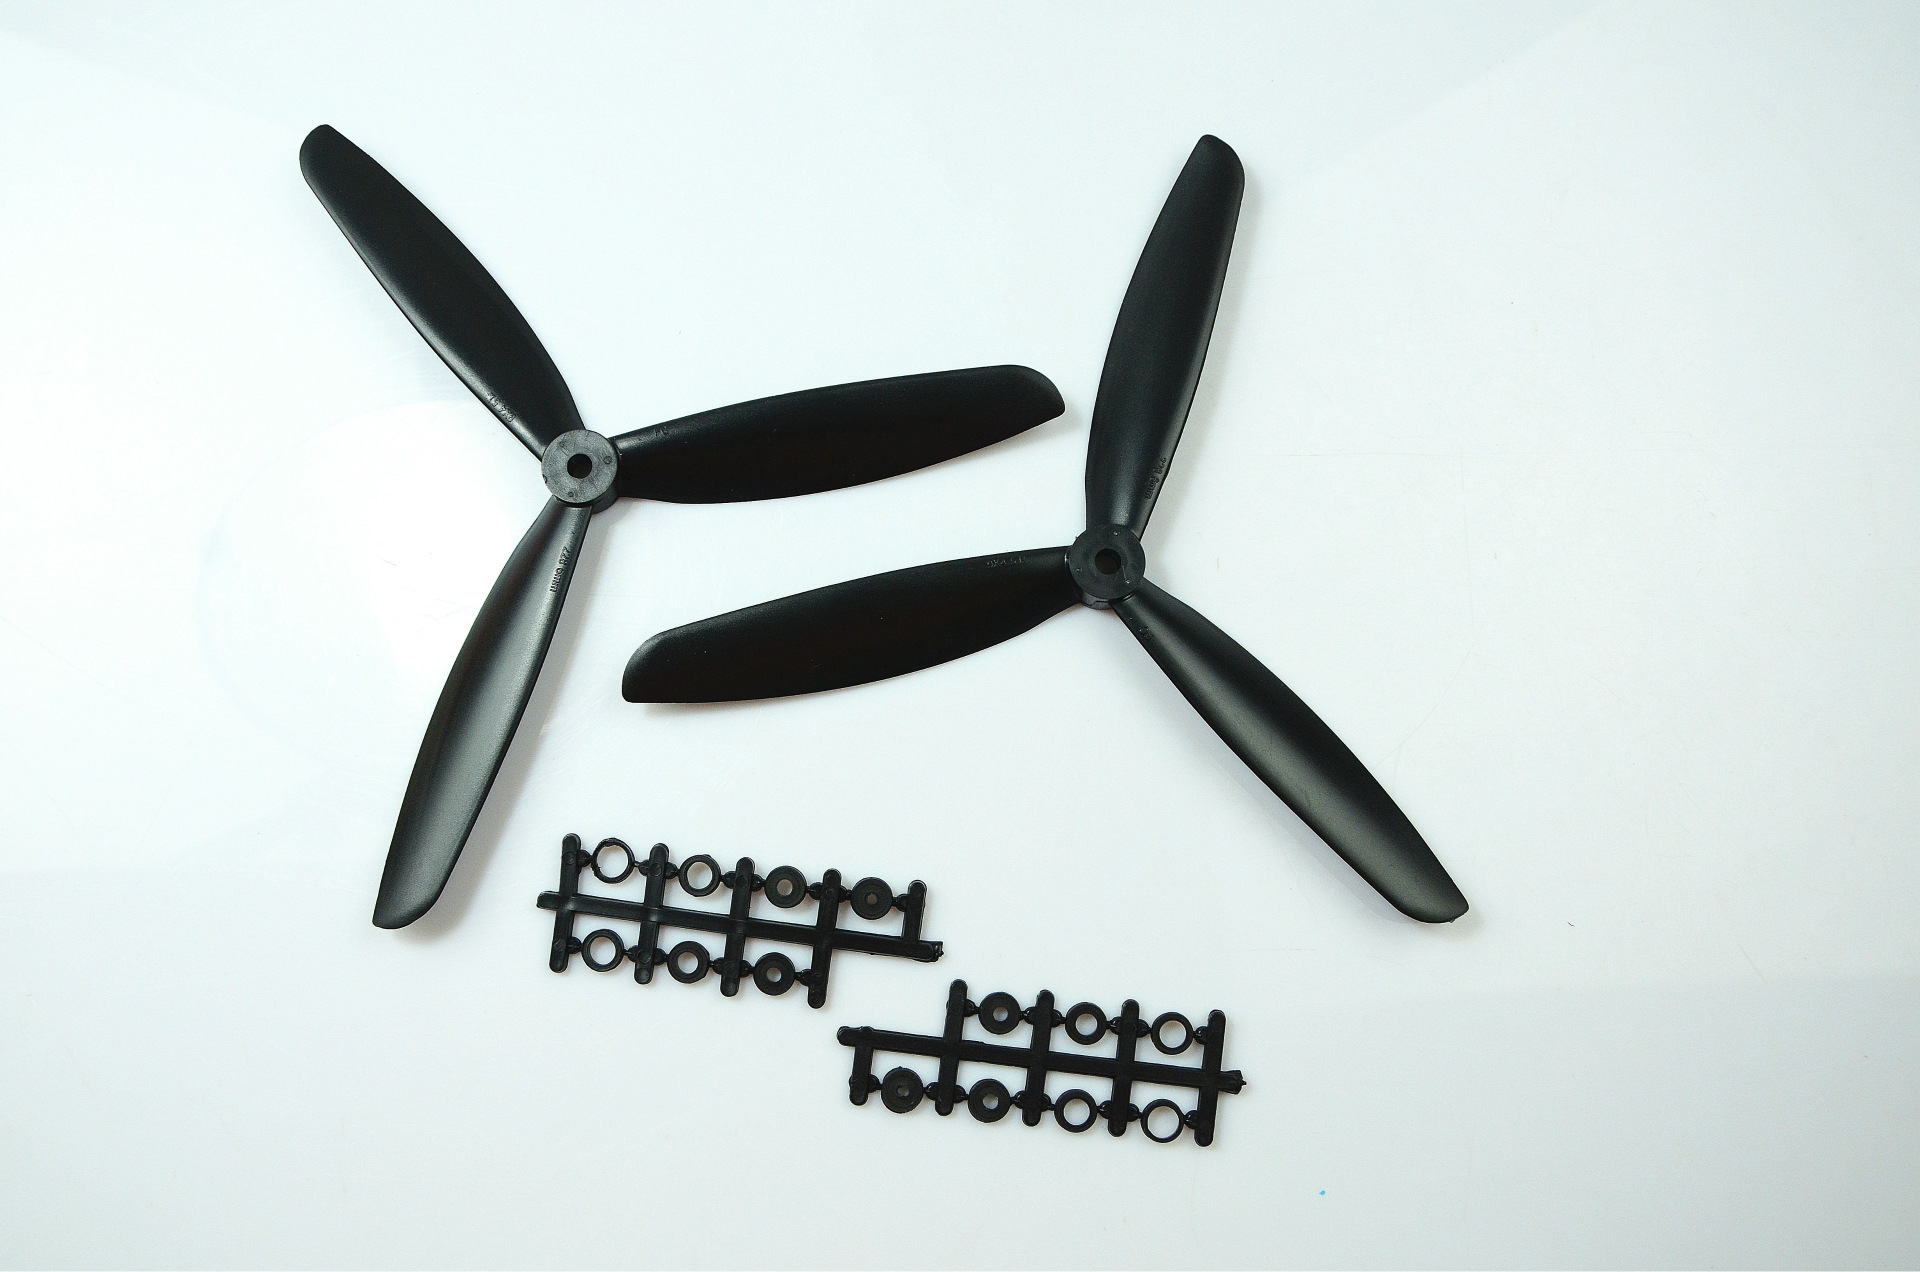 9X4.5 9045 9045R CW CCW 2 Pairs 3-Blade Electric Propeller RC Multicopter Quadcopter Kit Model Accessories UAV Accessories 10 pairs 6045 3 blade cw flat propeller ccw prop for rc multicopter quadcopter